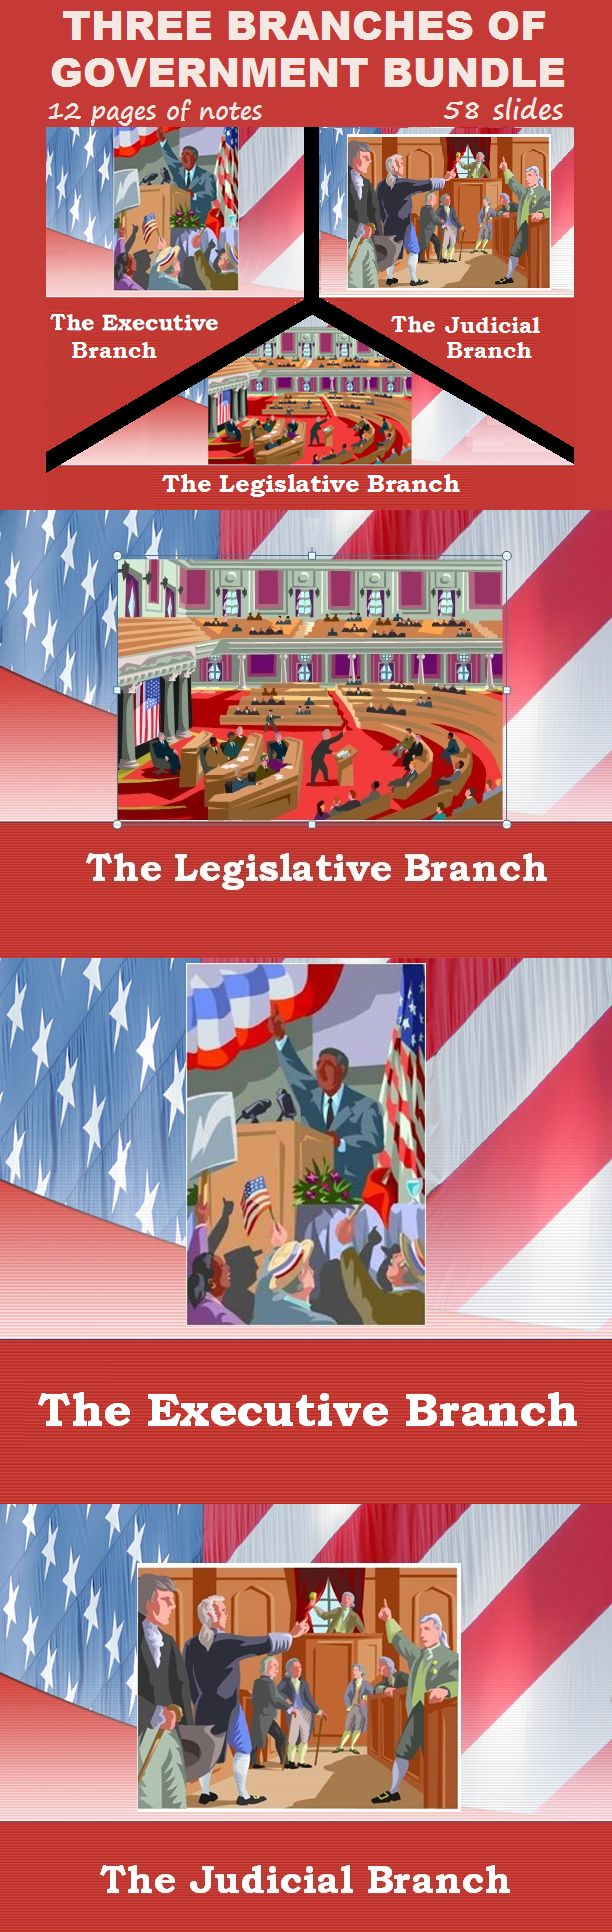 an analysis of three branches of the united states government The amendments were intended to limit the power of the central national government but also insure freedom to the citizens of the united states identify and explain the formal method of amending the constitution.